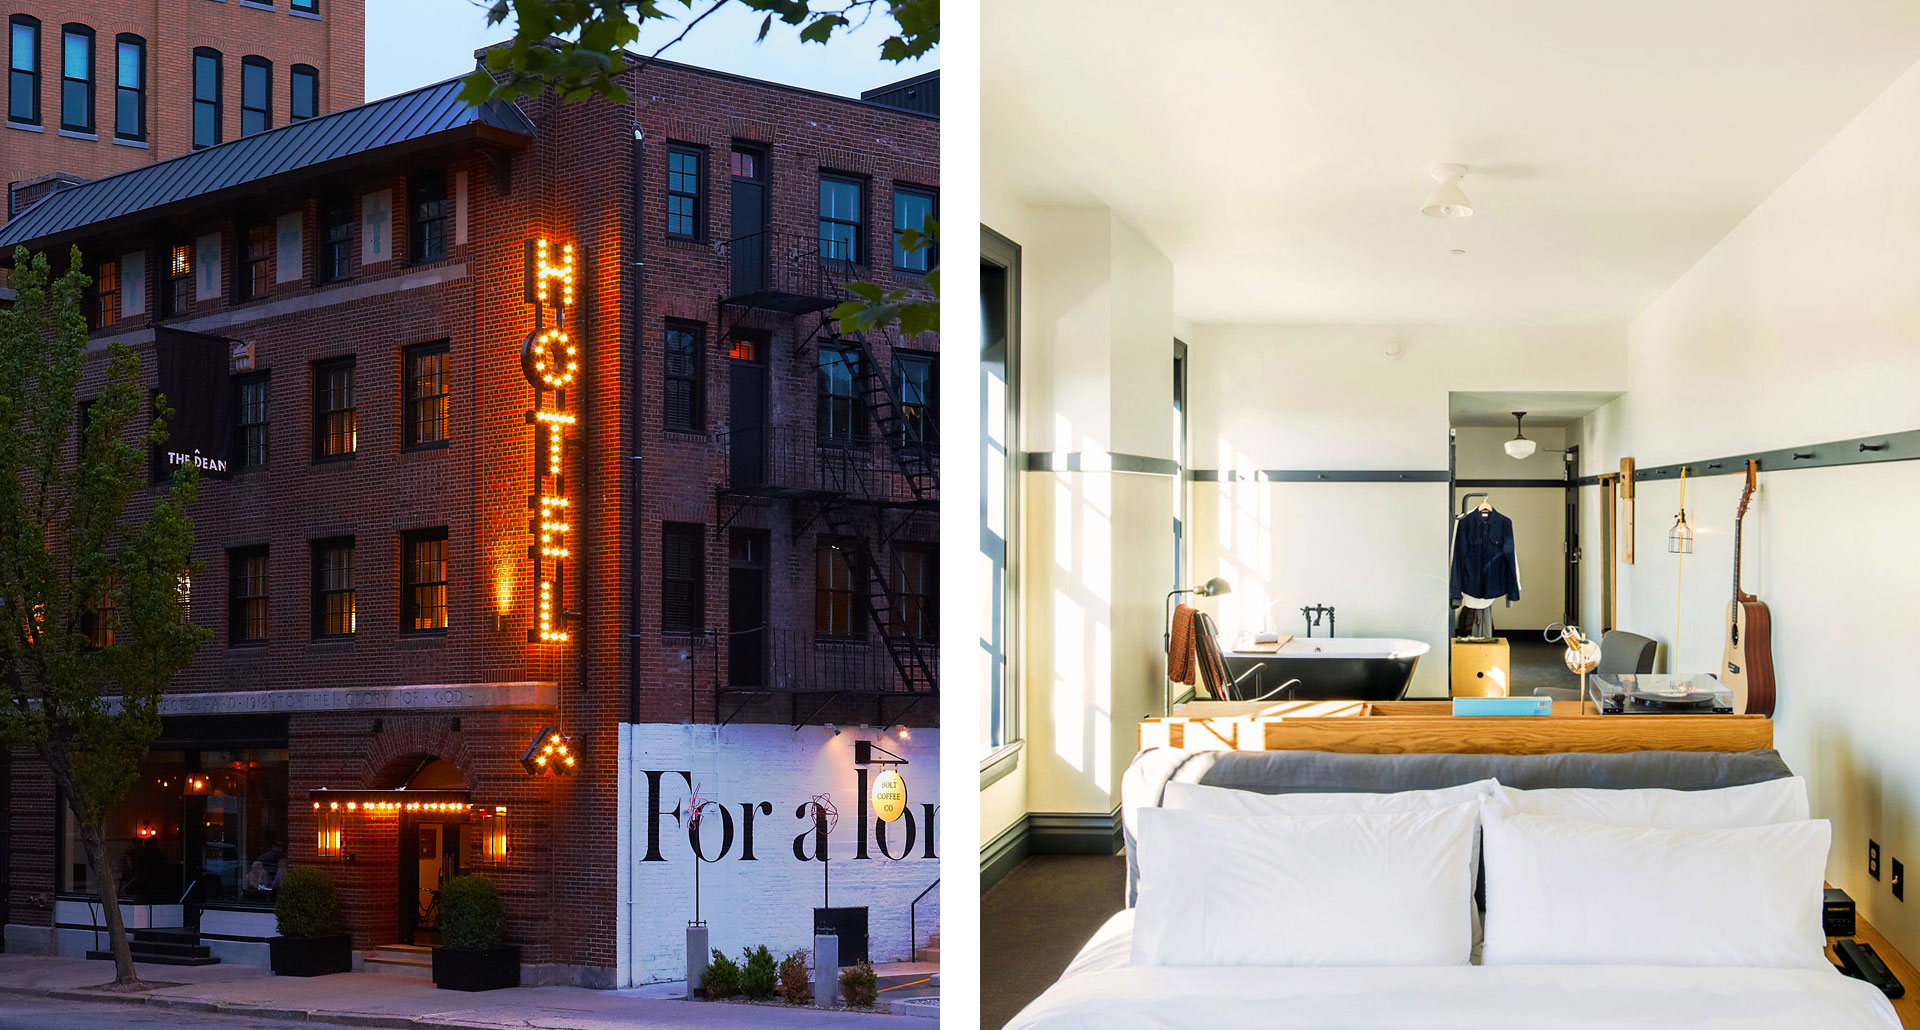 The Dean - budget boutique hotel in Providence and ace Pittsburgh - boutique hotel in Pittsburgh